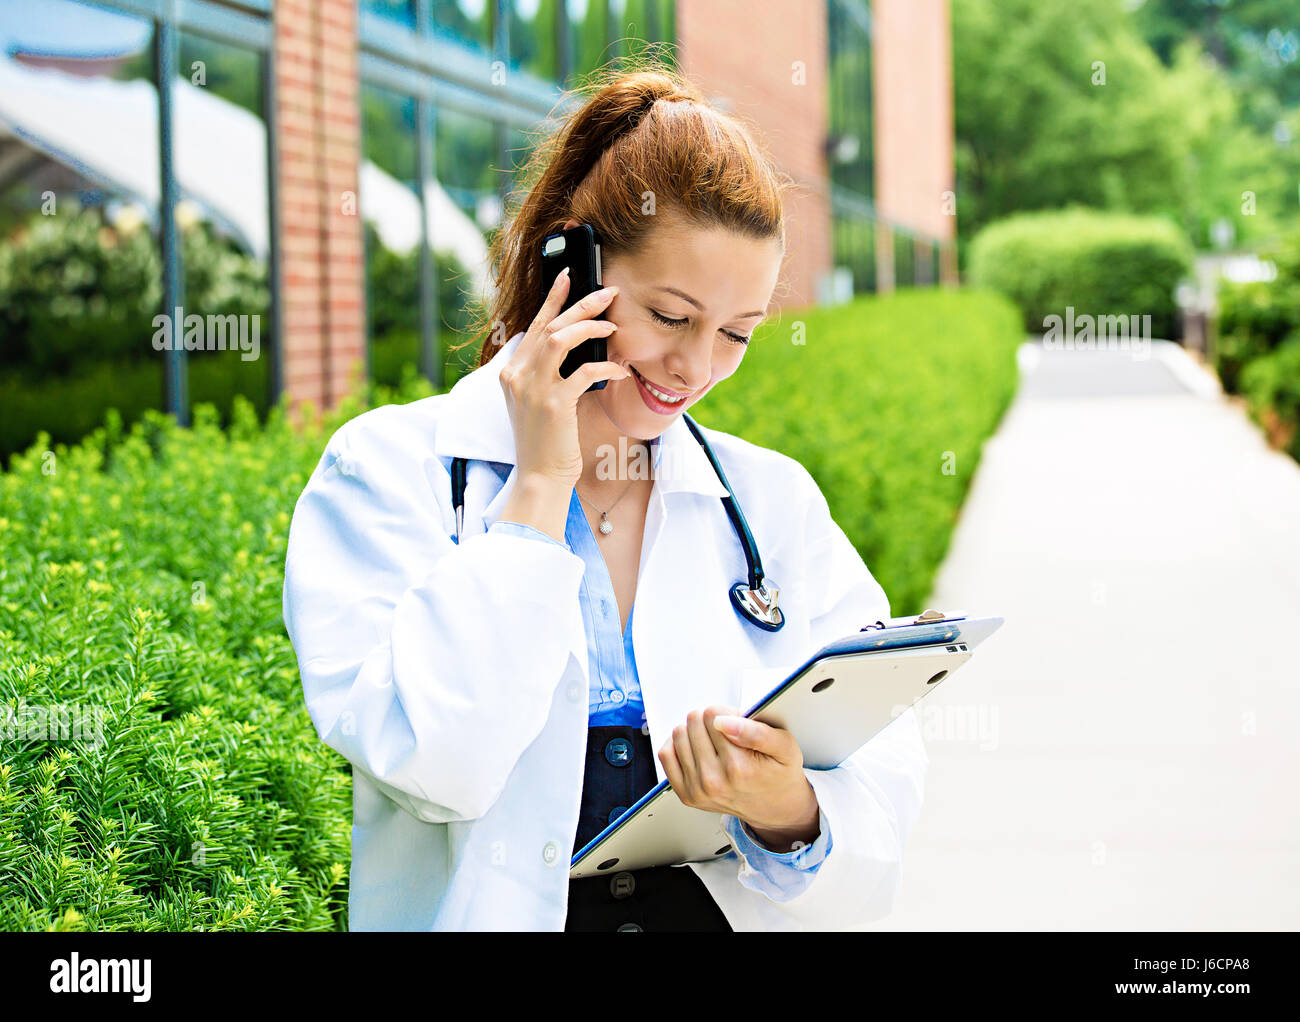 Closeup portrait, young smiling confident female doctor, healthcare professional talking on phone, giving consultation - Stock Image